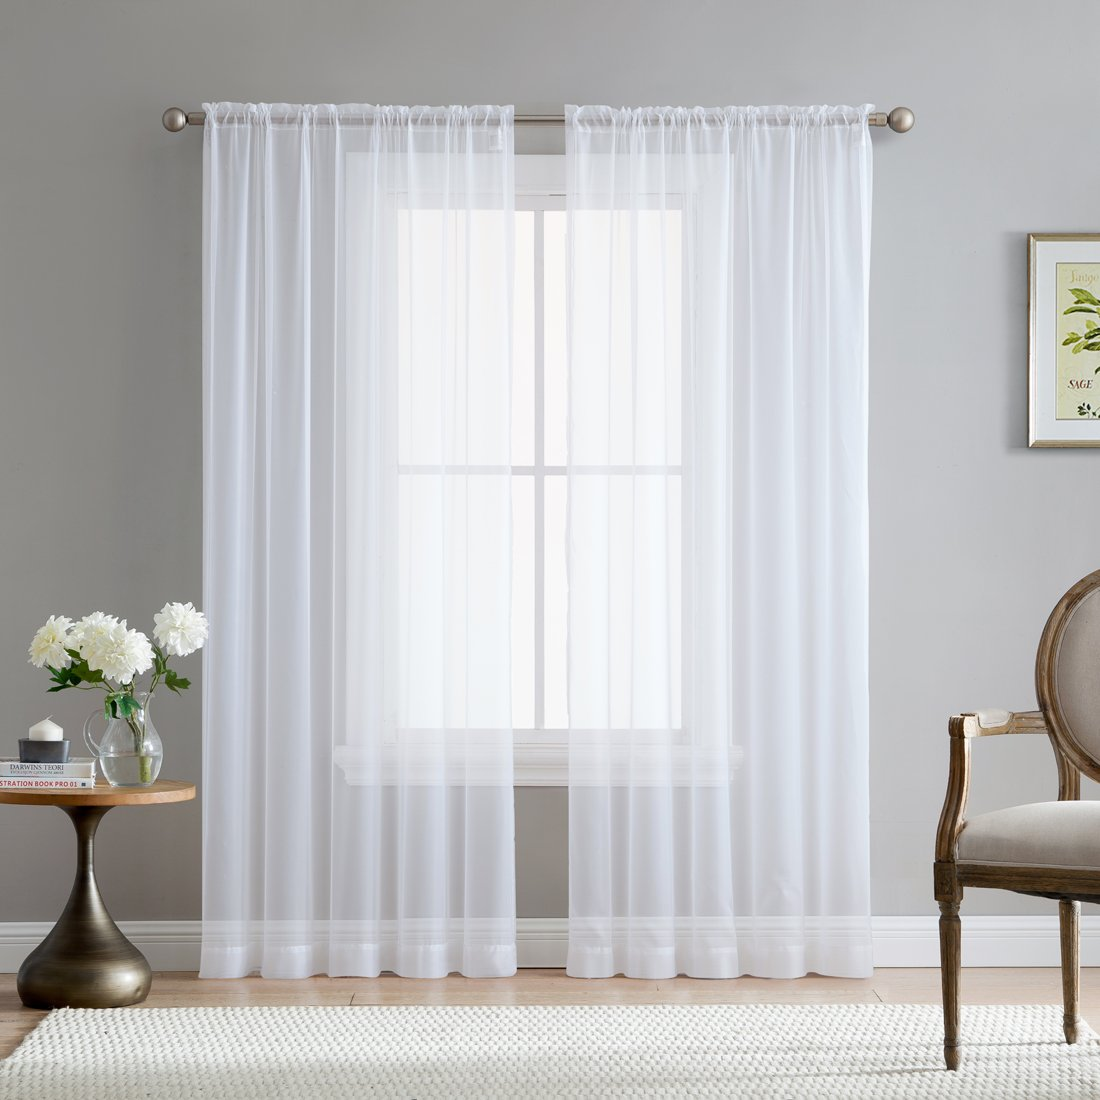 "HLC.ME White Rod Pocket Sheer Voile Window Curtain Panels for Bedroom, Living Room, Kids Room & Kitchen - 72"" inch Long"